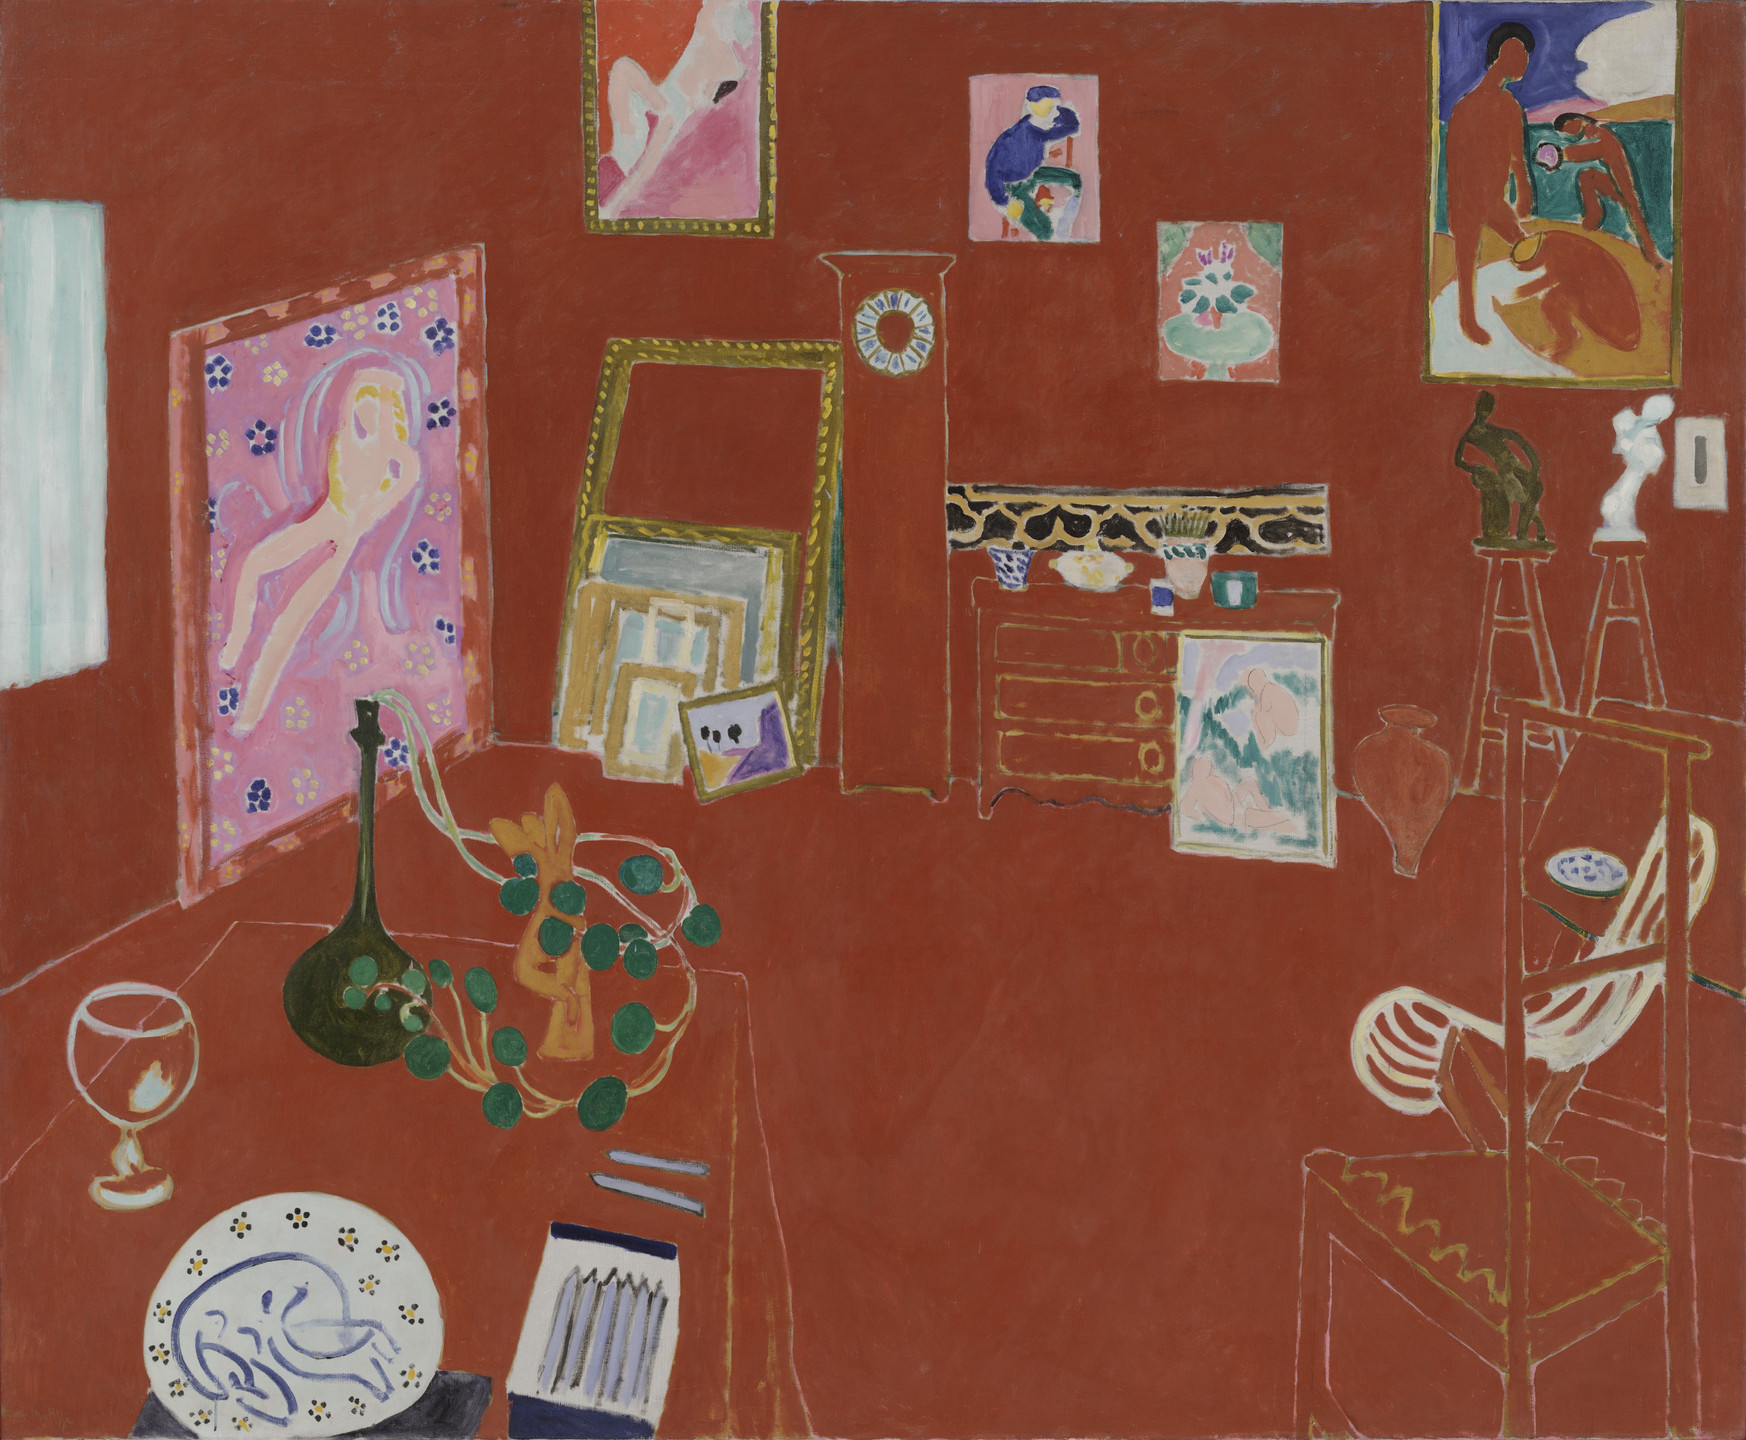 Henri Matisse. The Red Studio. Issy-les-Moulineaux, fall 1911